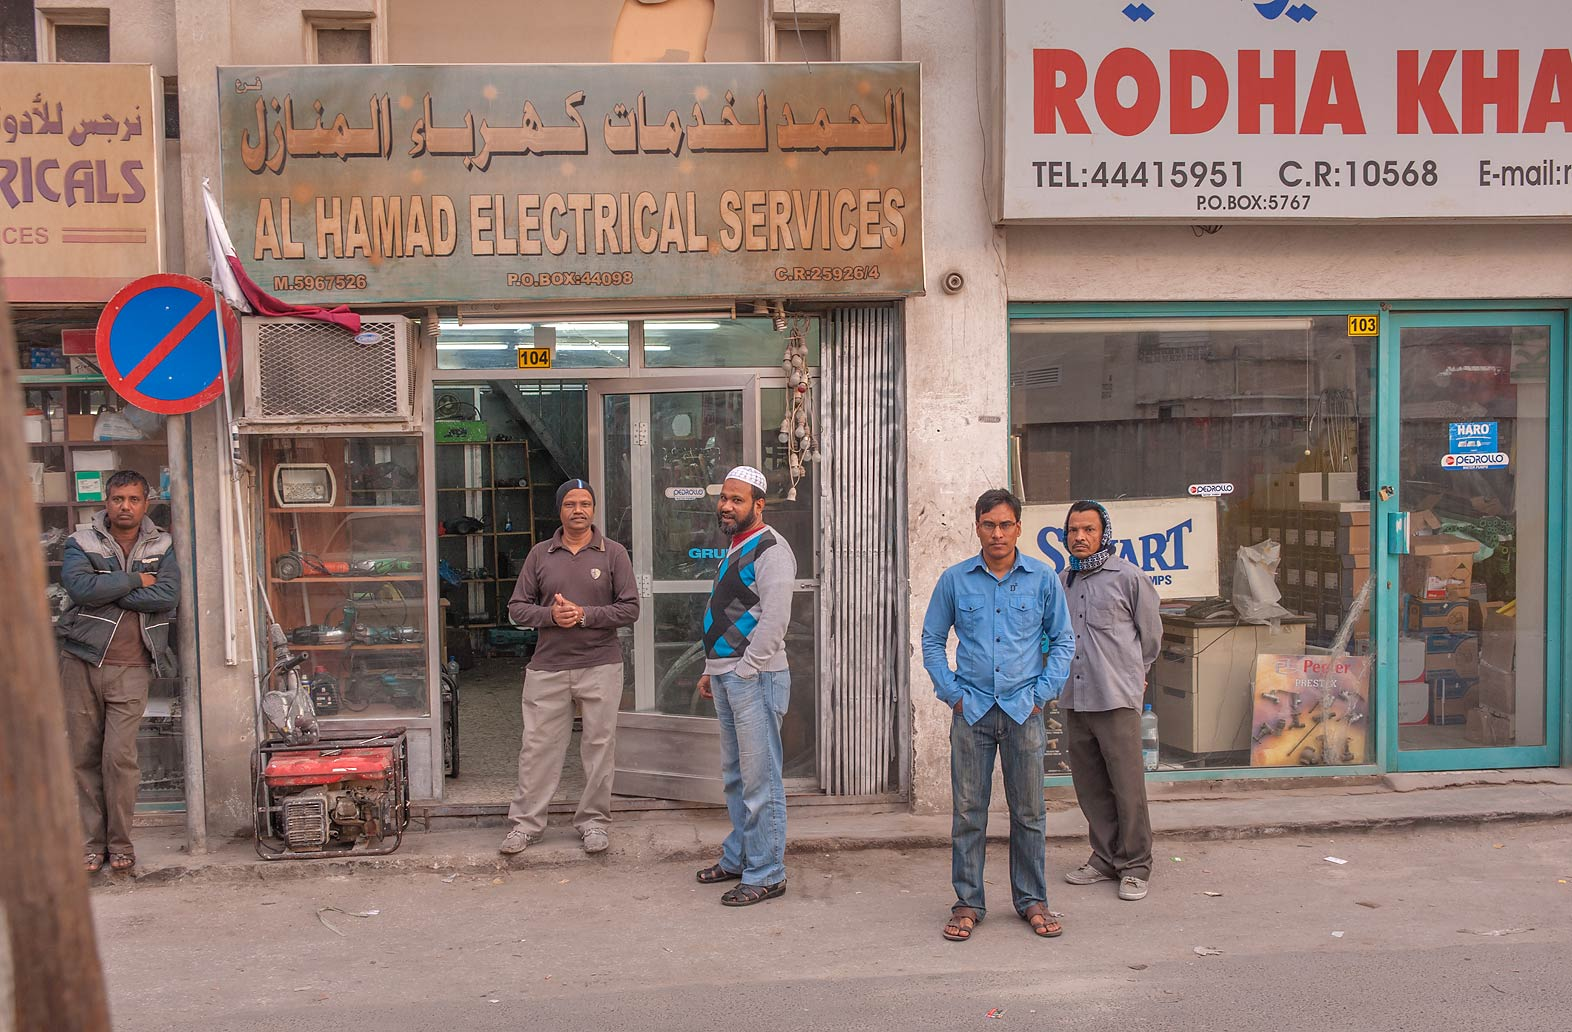 Al Hamad Electrical Services at Al Najada St. in Musheirib neighborhood. Doha, Qatar